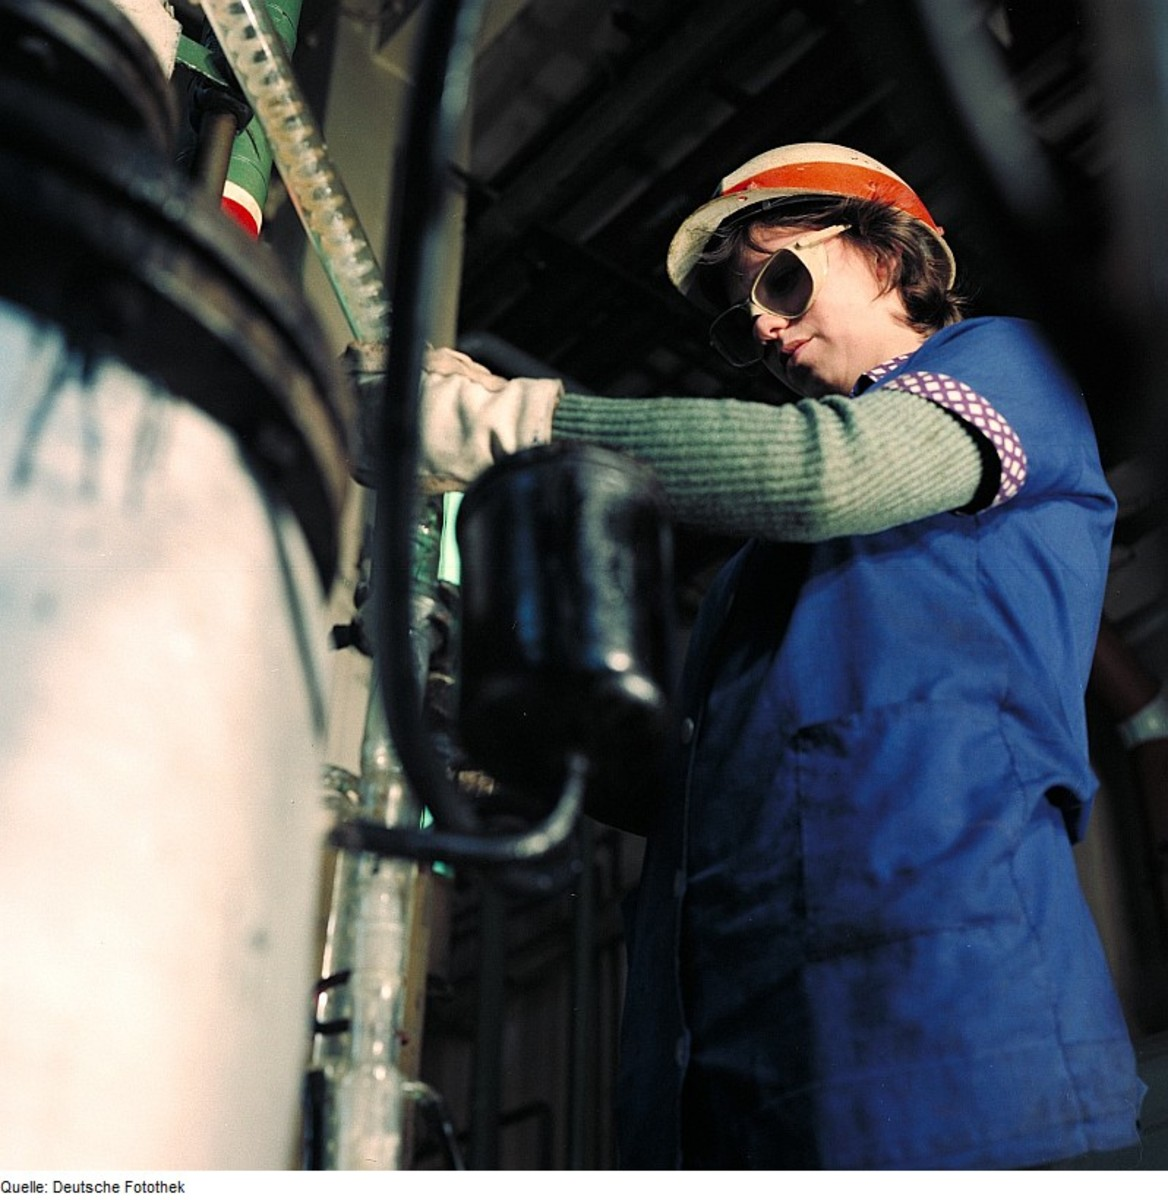 Woman working in construction